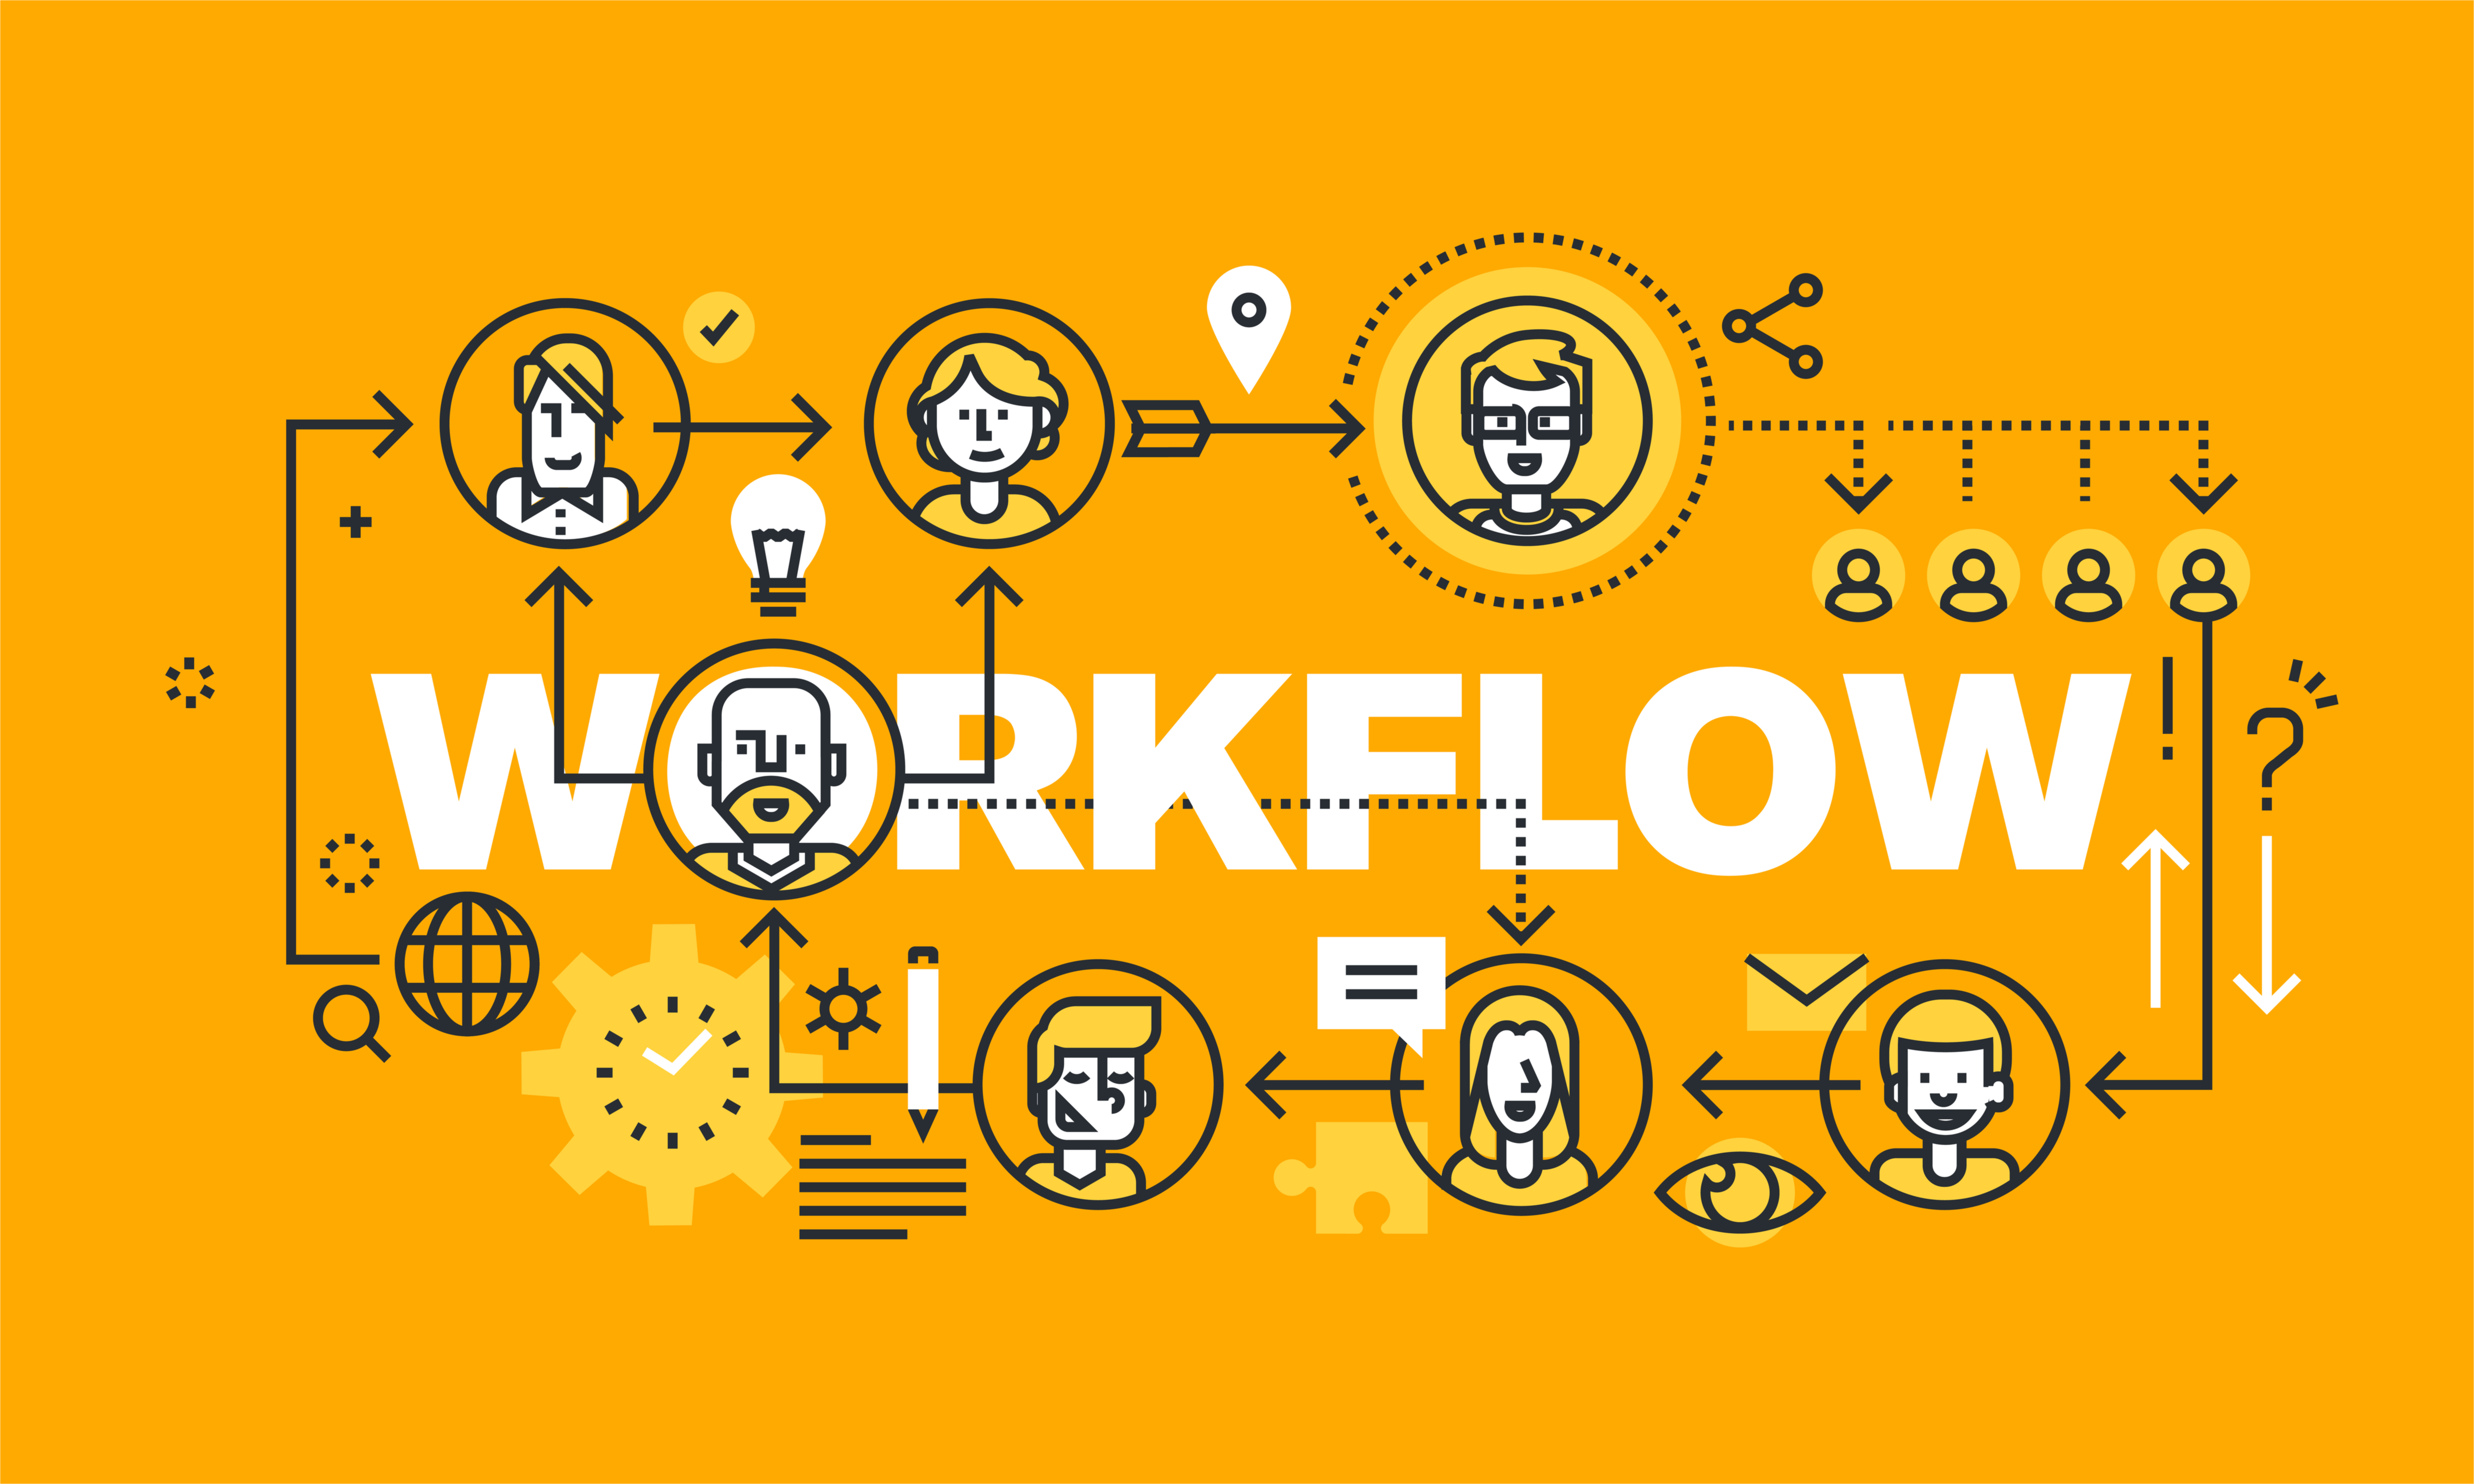 5 Client-Facing Workflow Portals for 2020